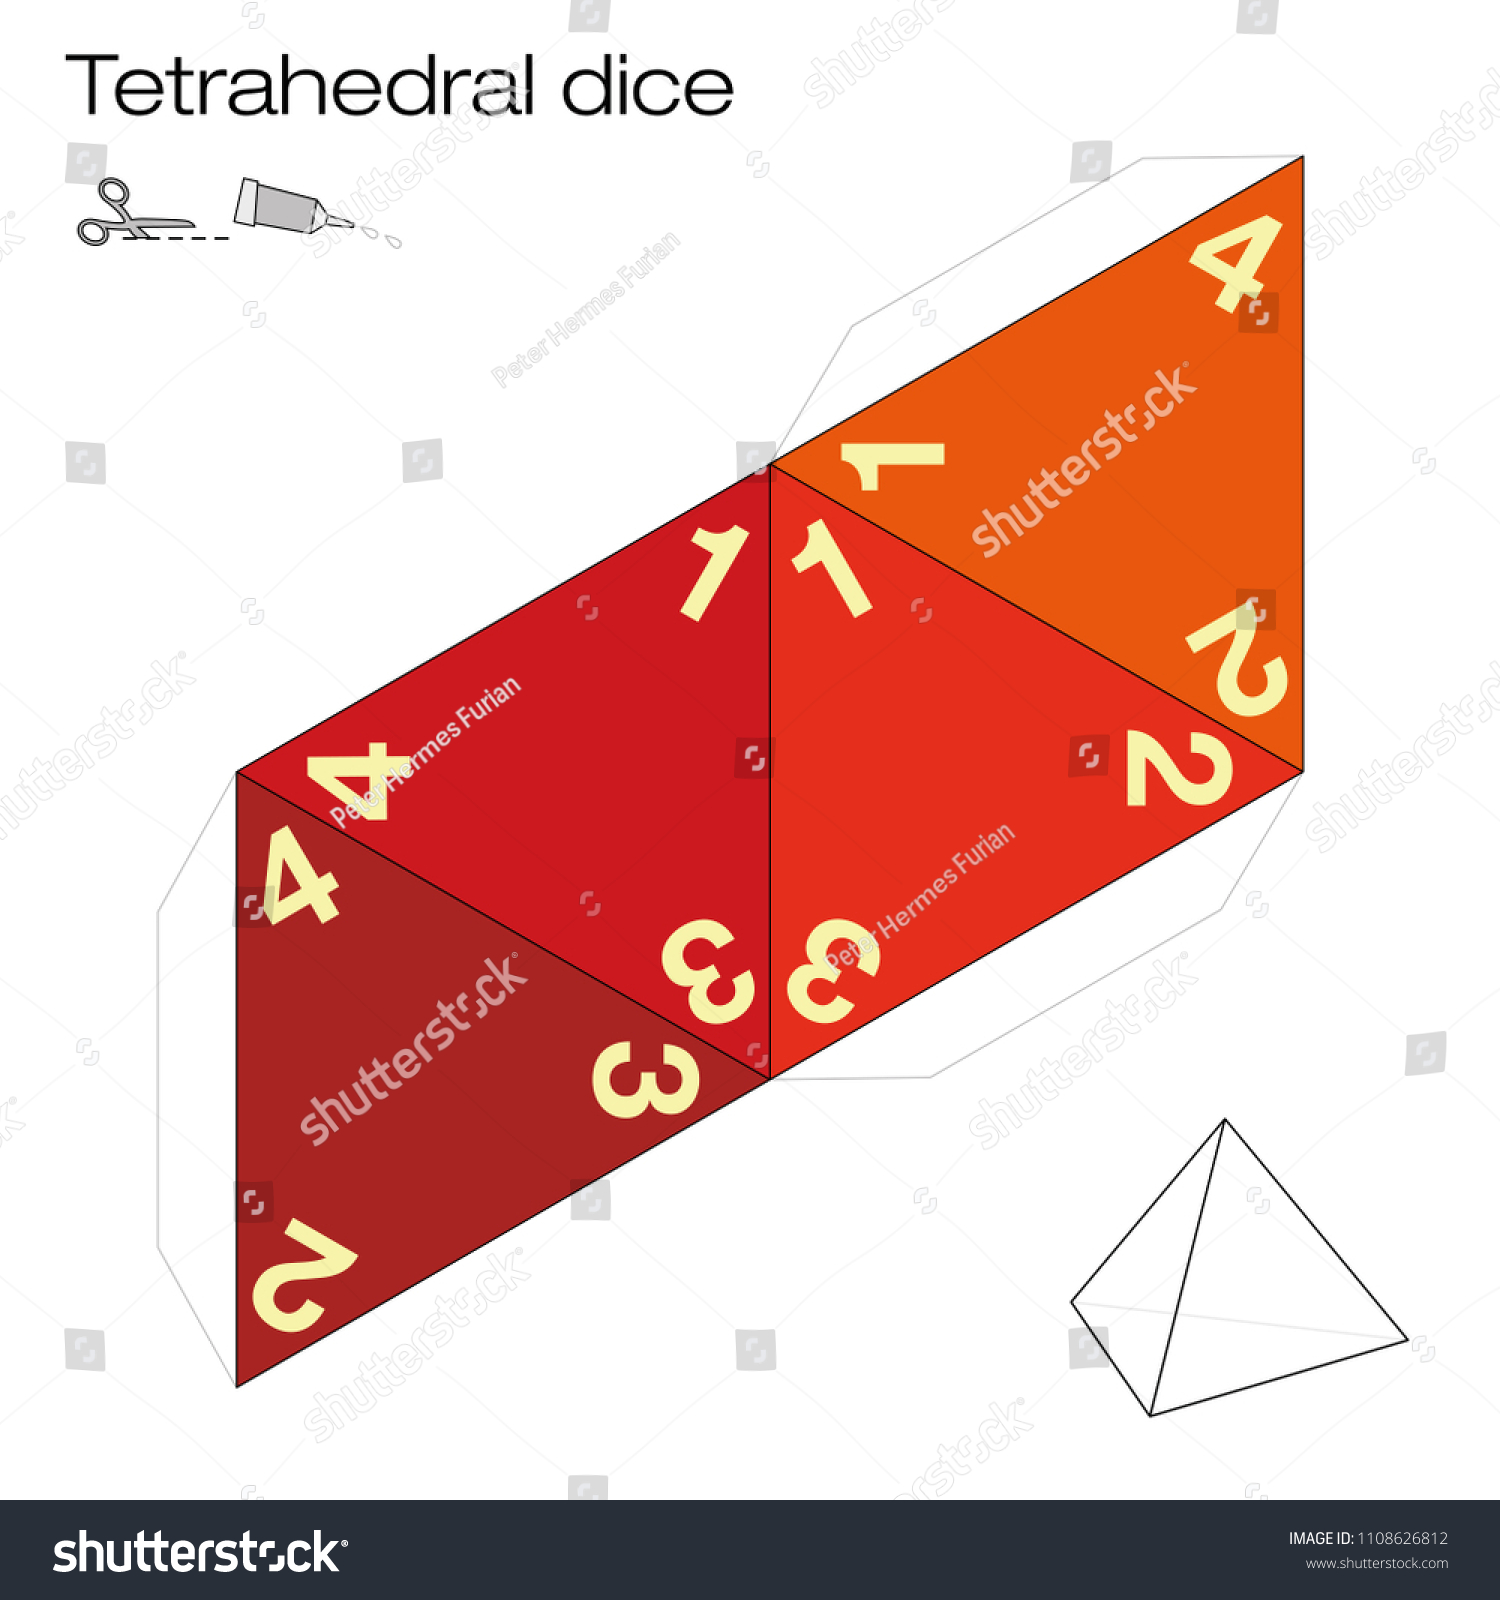 Tetrahedron Template Four Sided Tetrahedral Dice Stock Vector